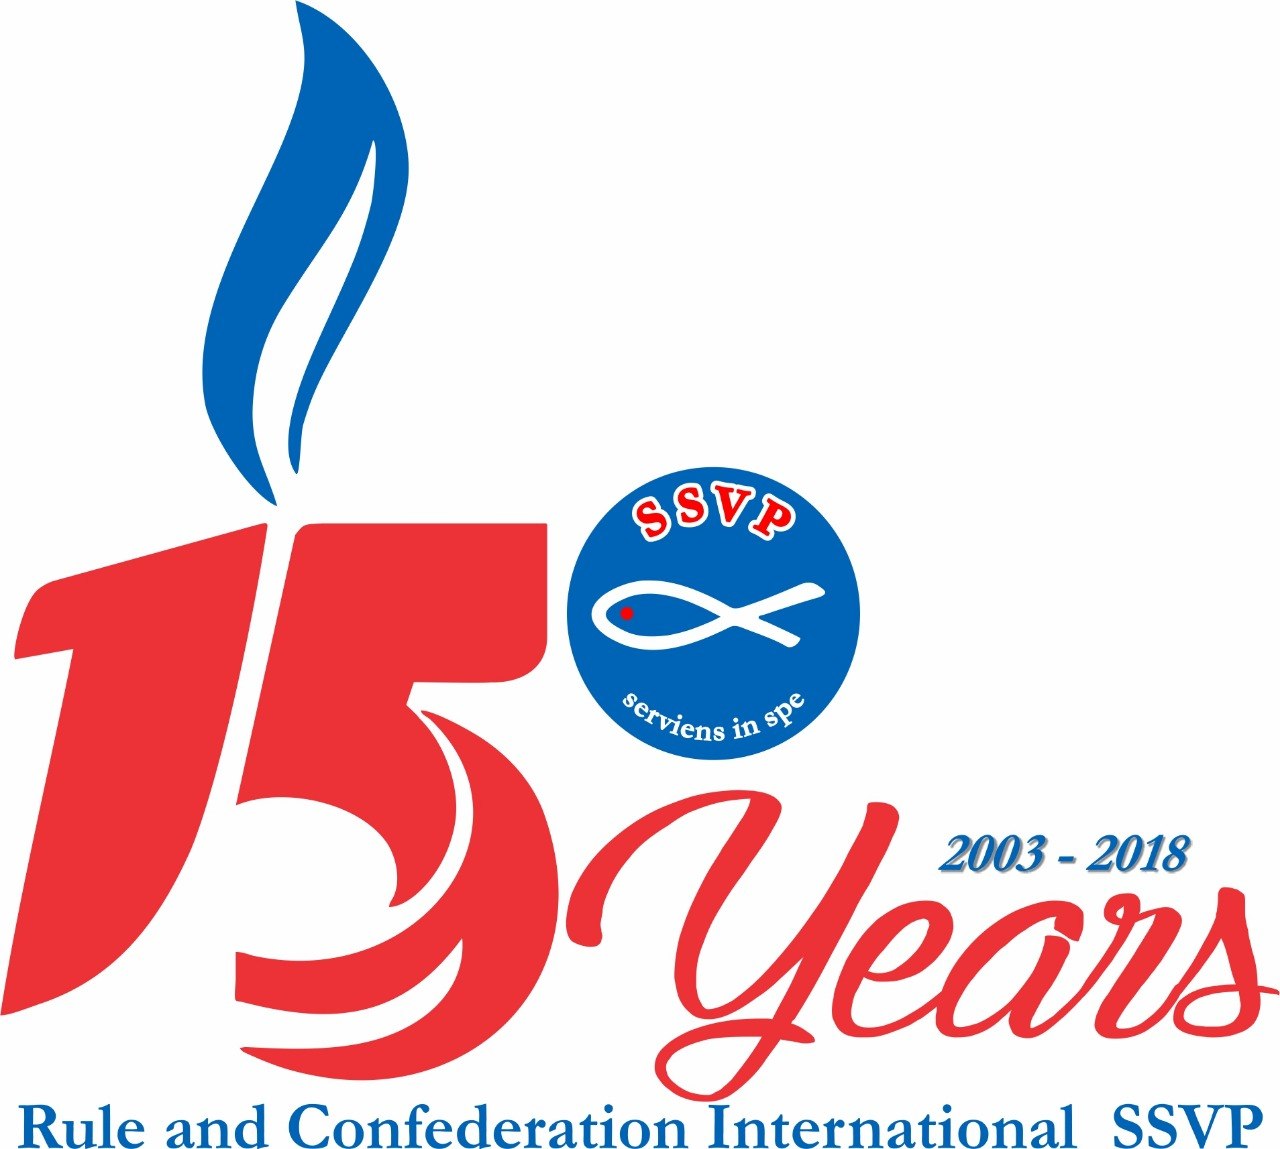 General Council is celebrating the 15th Aniversary of the Rule and Confederation